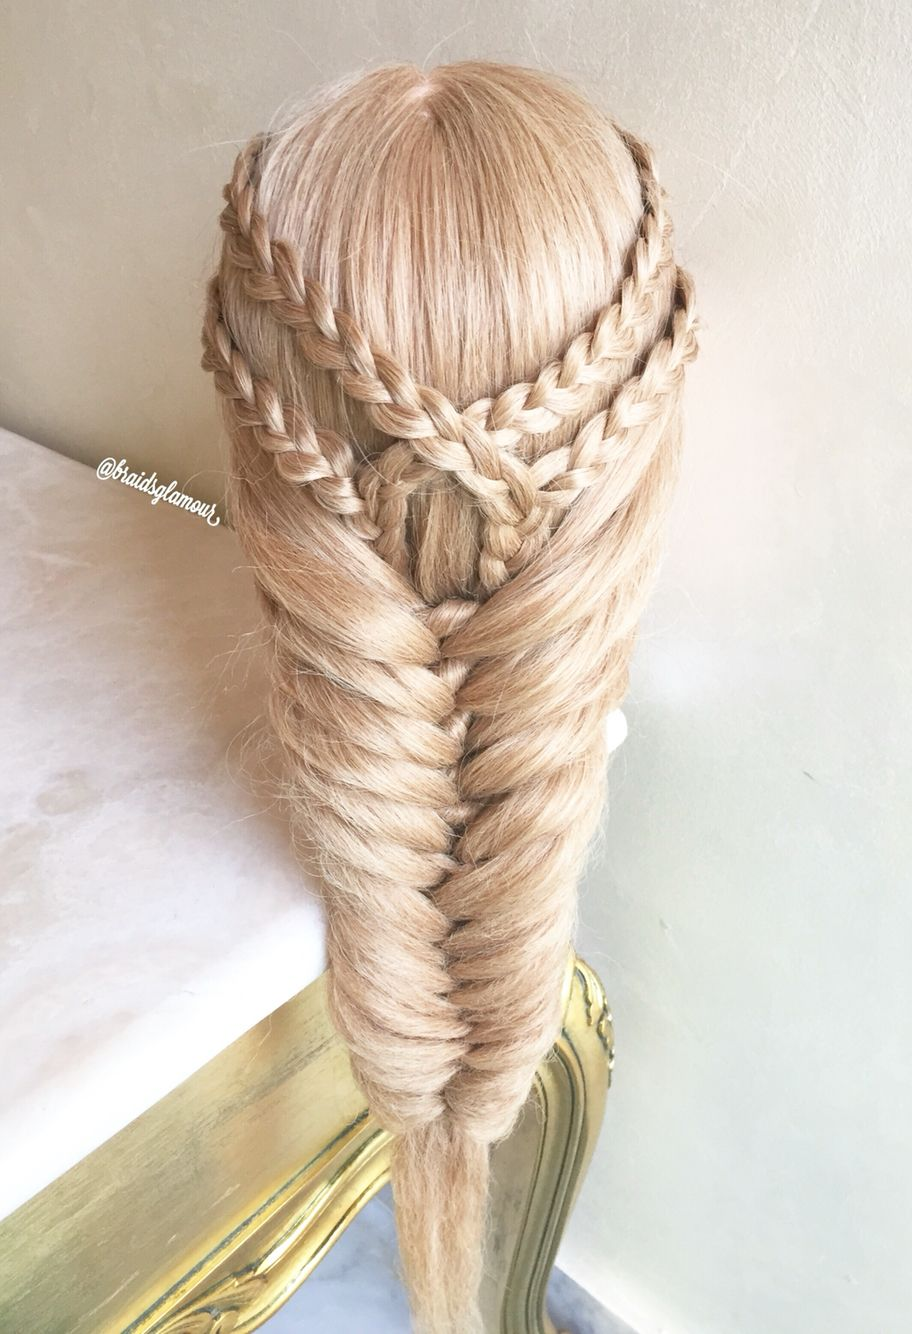 Fishtail Braid Hairstyles Classy Double Braid Tieback Into Knotted Fishtail Braid  Hairstyles